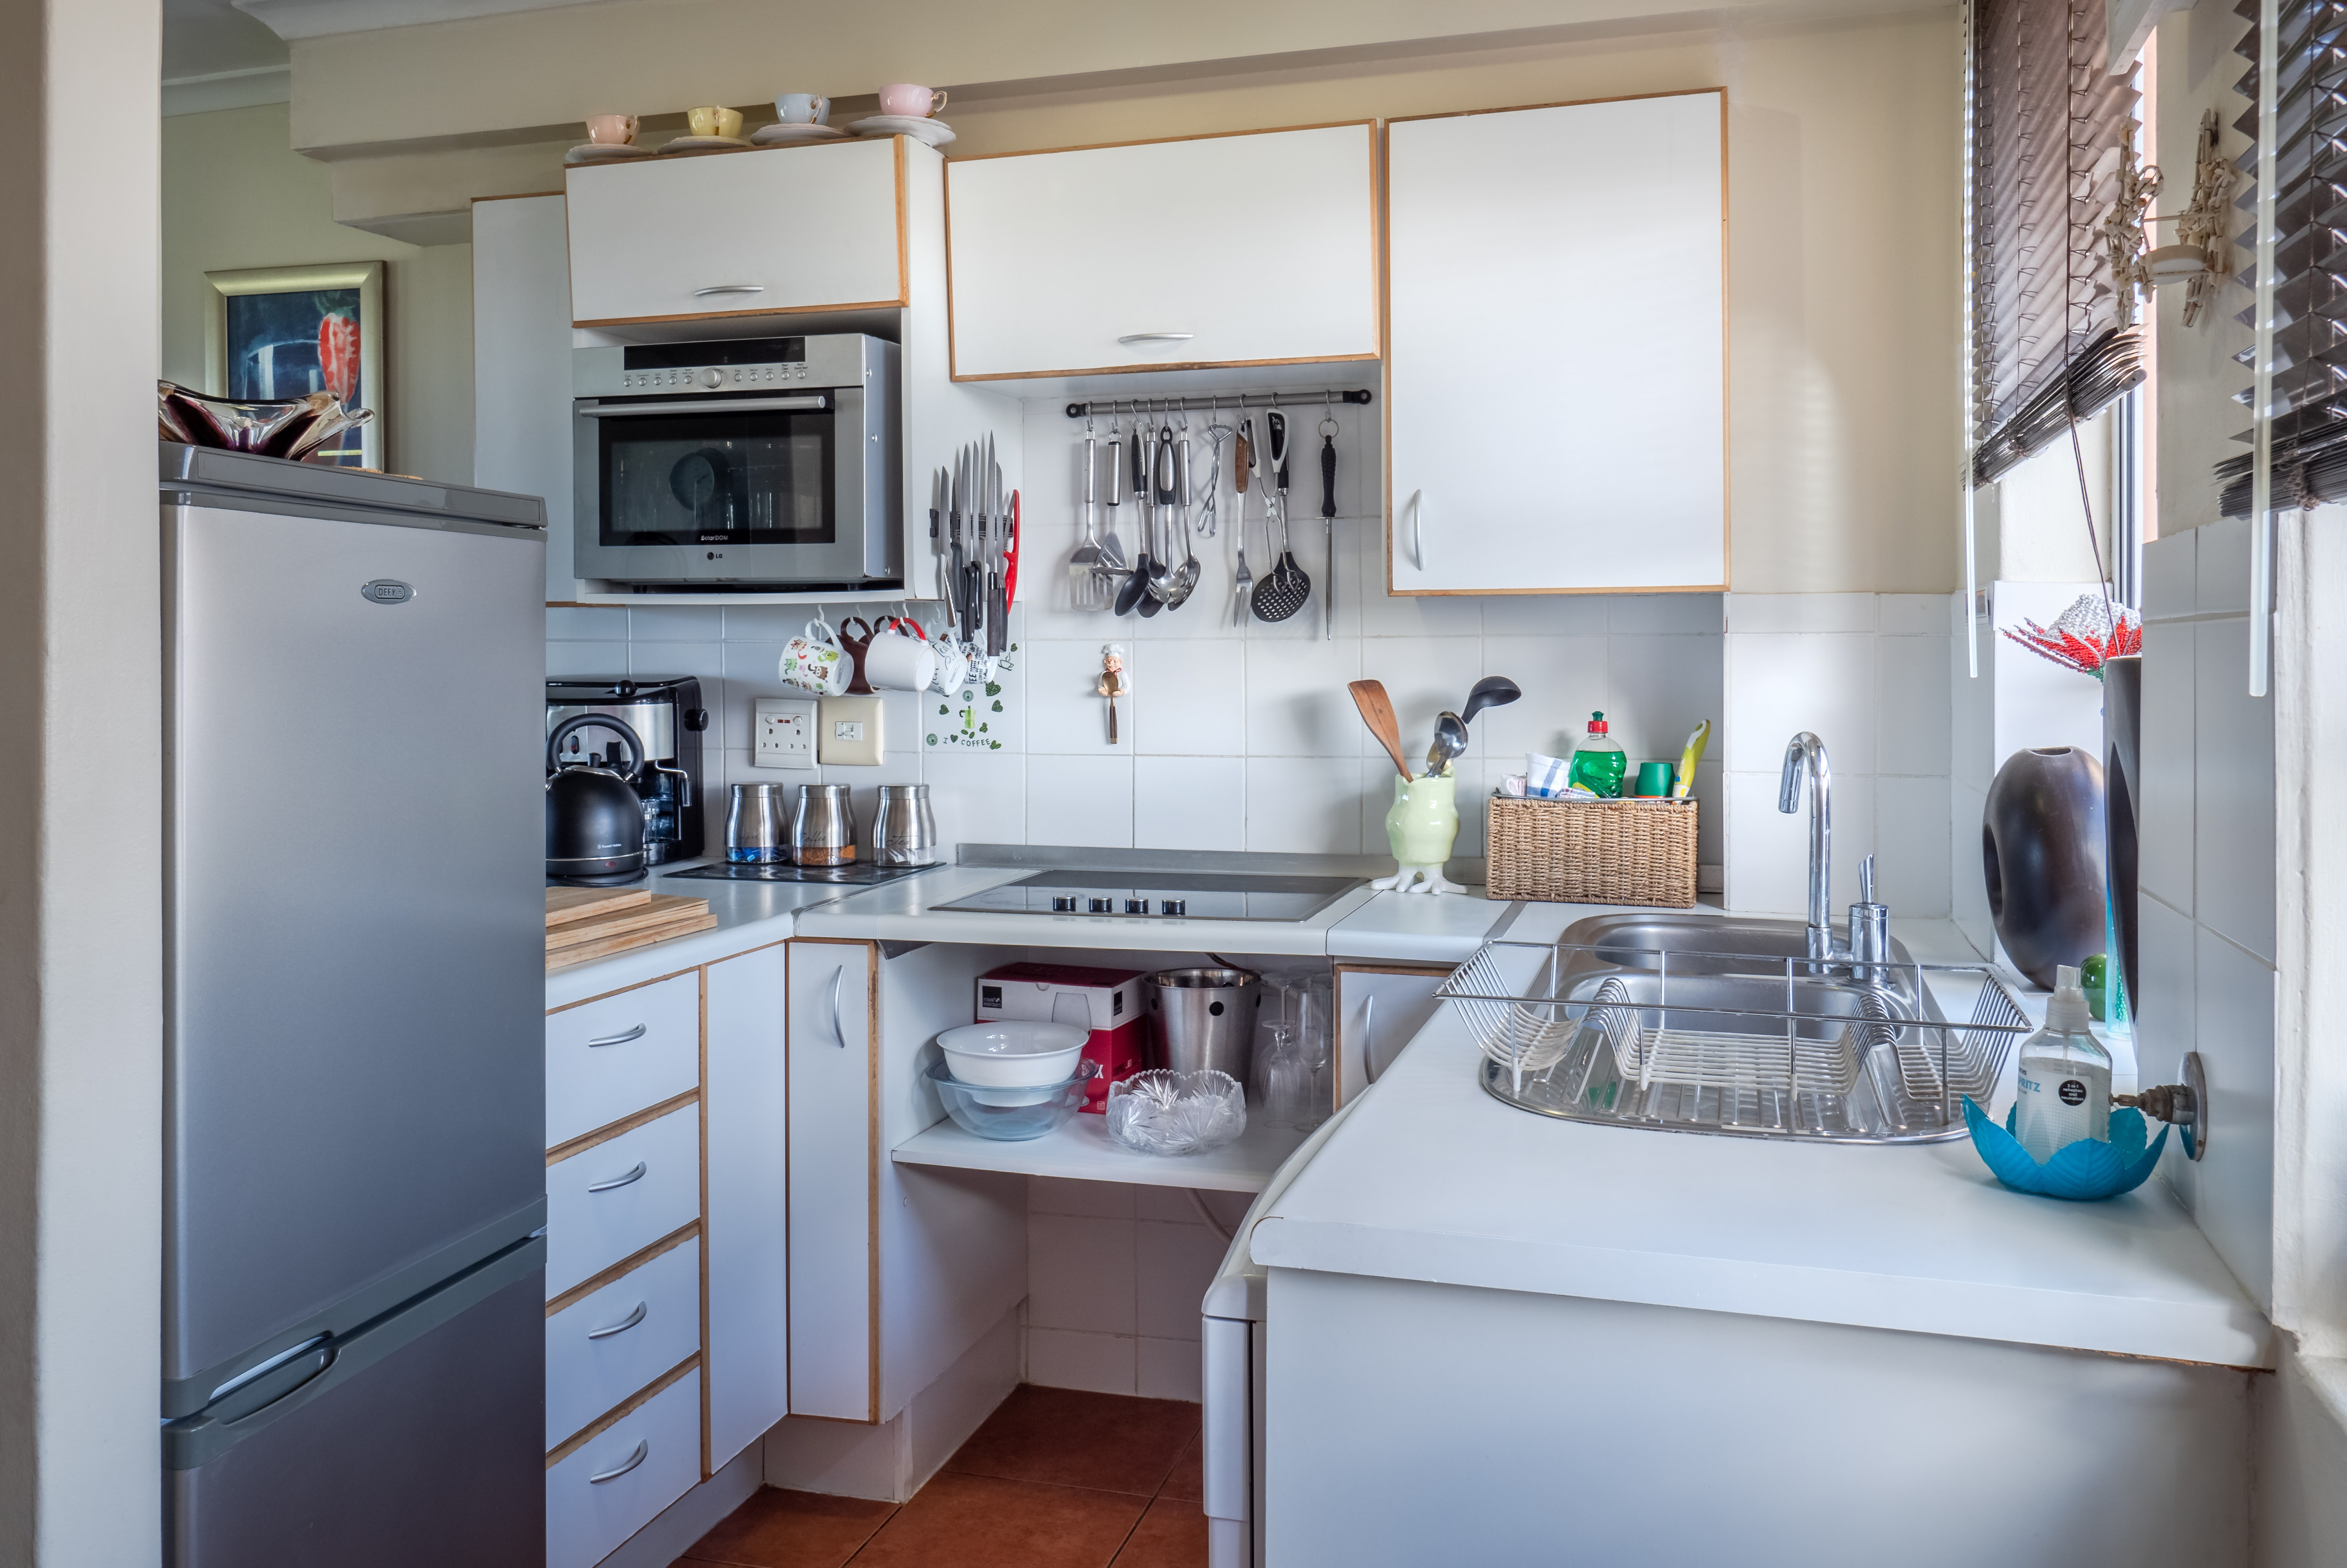 Tips To Pack Kitchen Items Before A Move